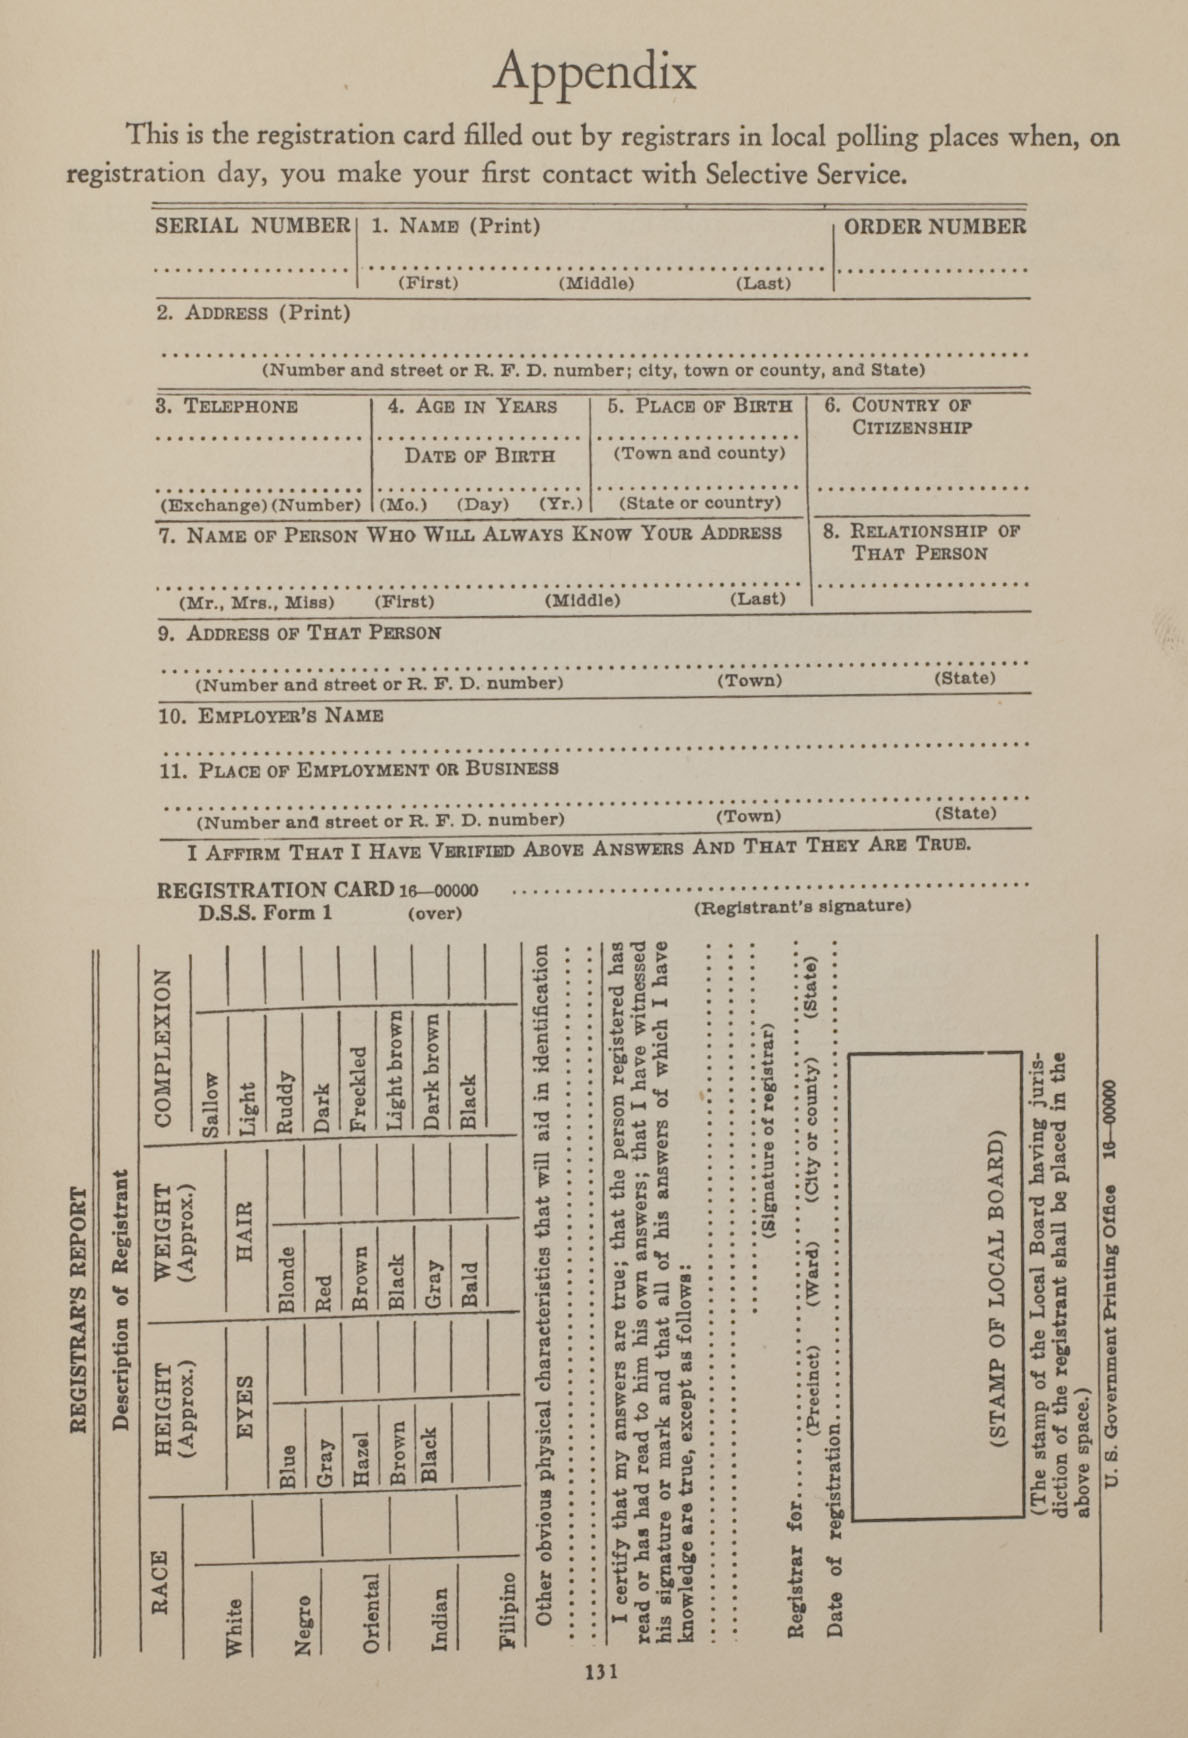 Registration card sample